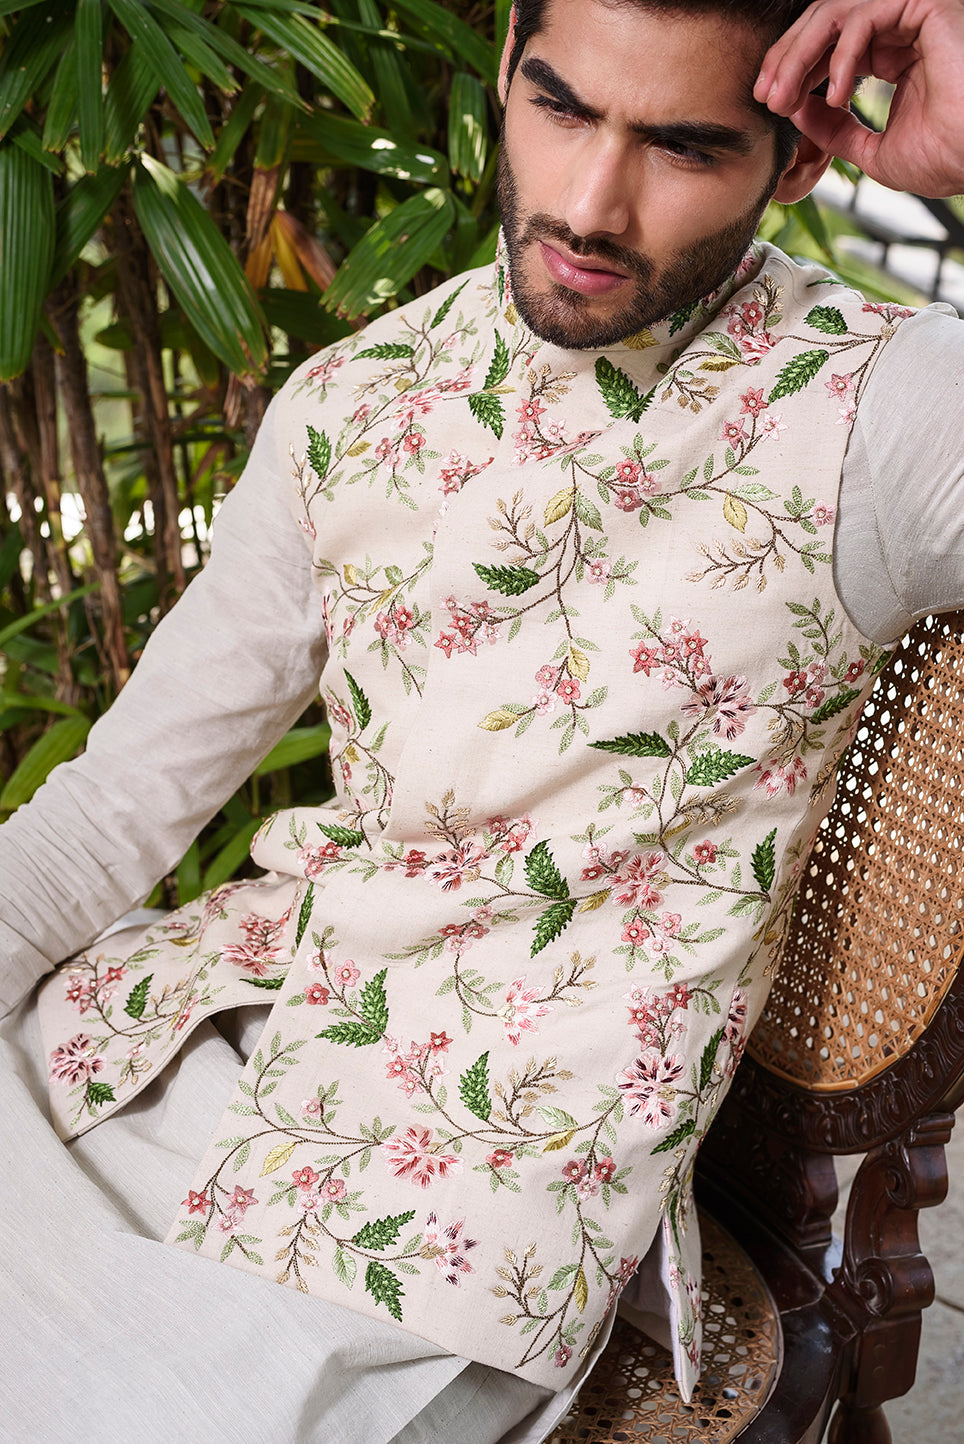 Off White Rawsilk with Colored Threadwork Floral Embroidery - The Grand Trunk